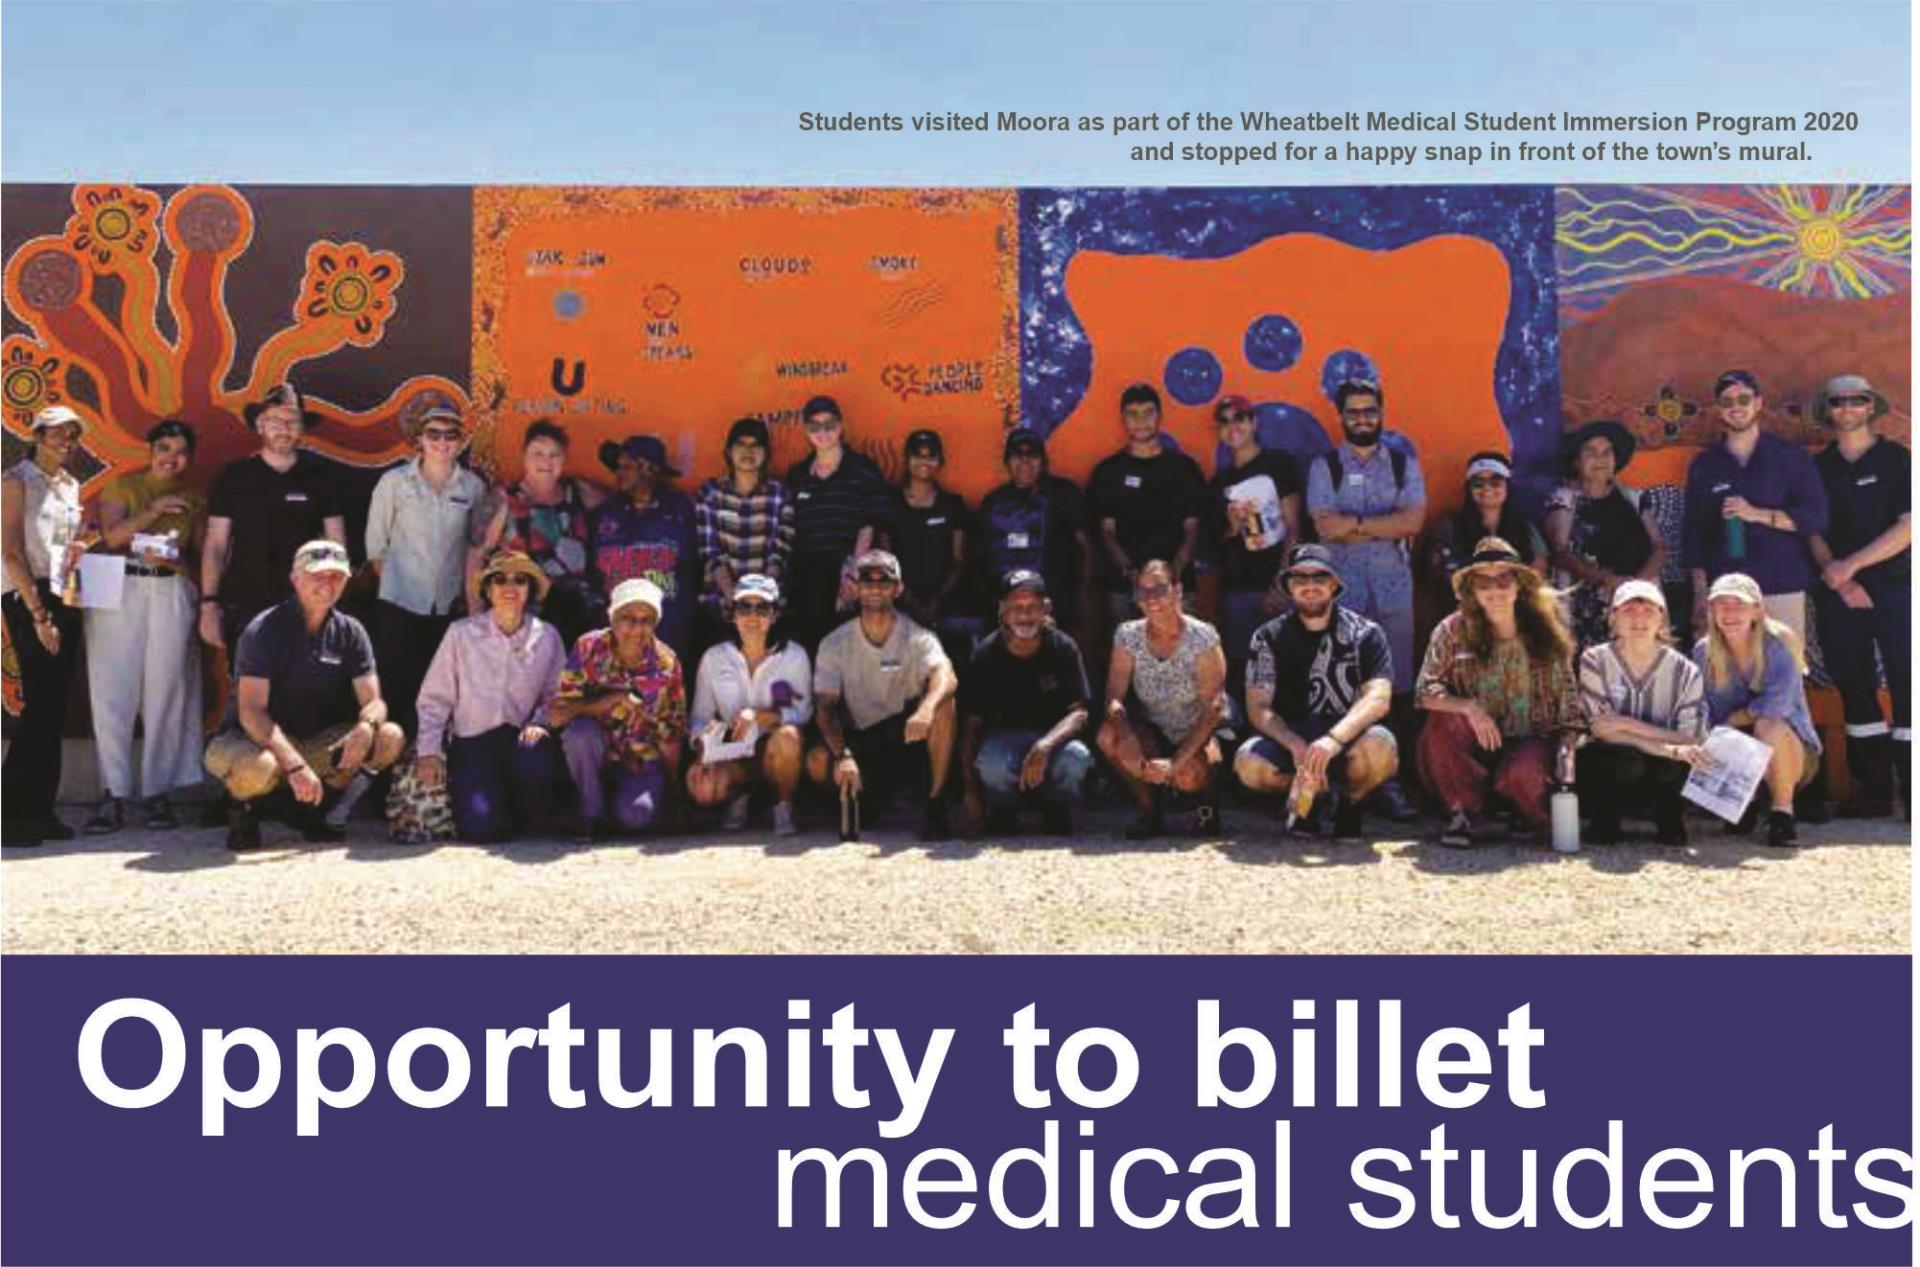 Opportunity to Billet Medical Students